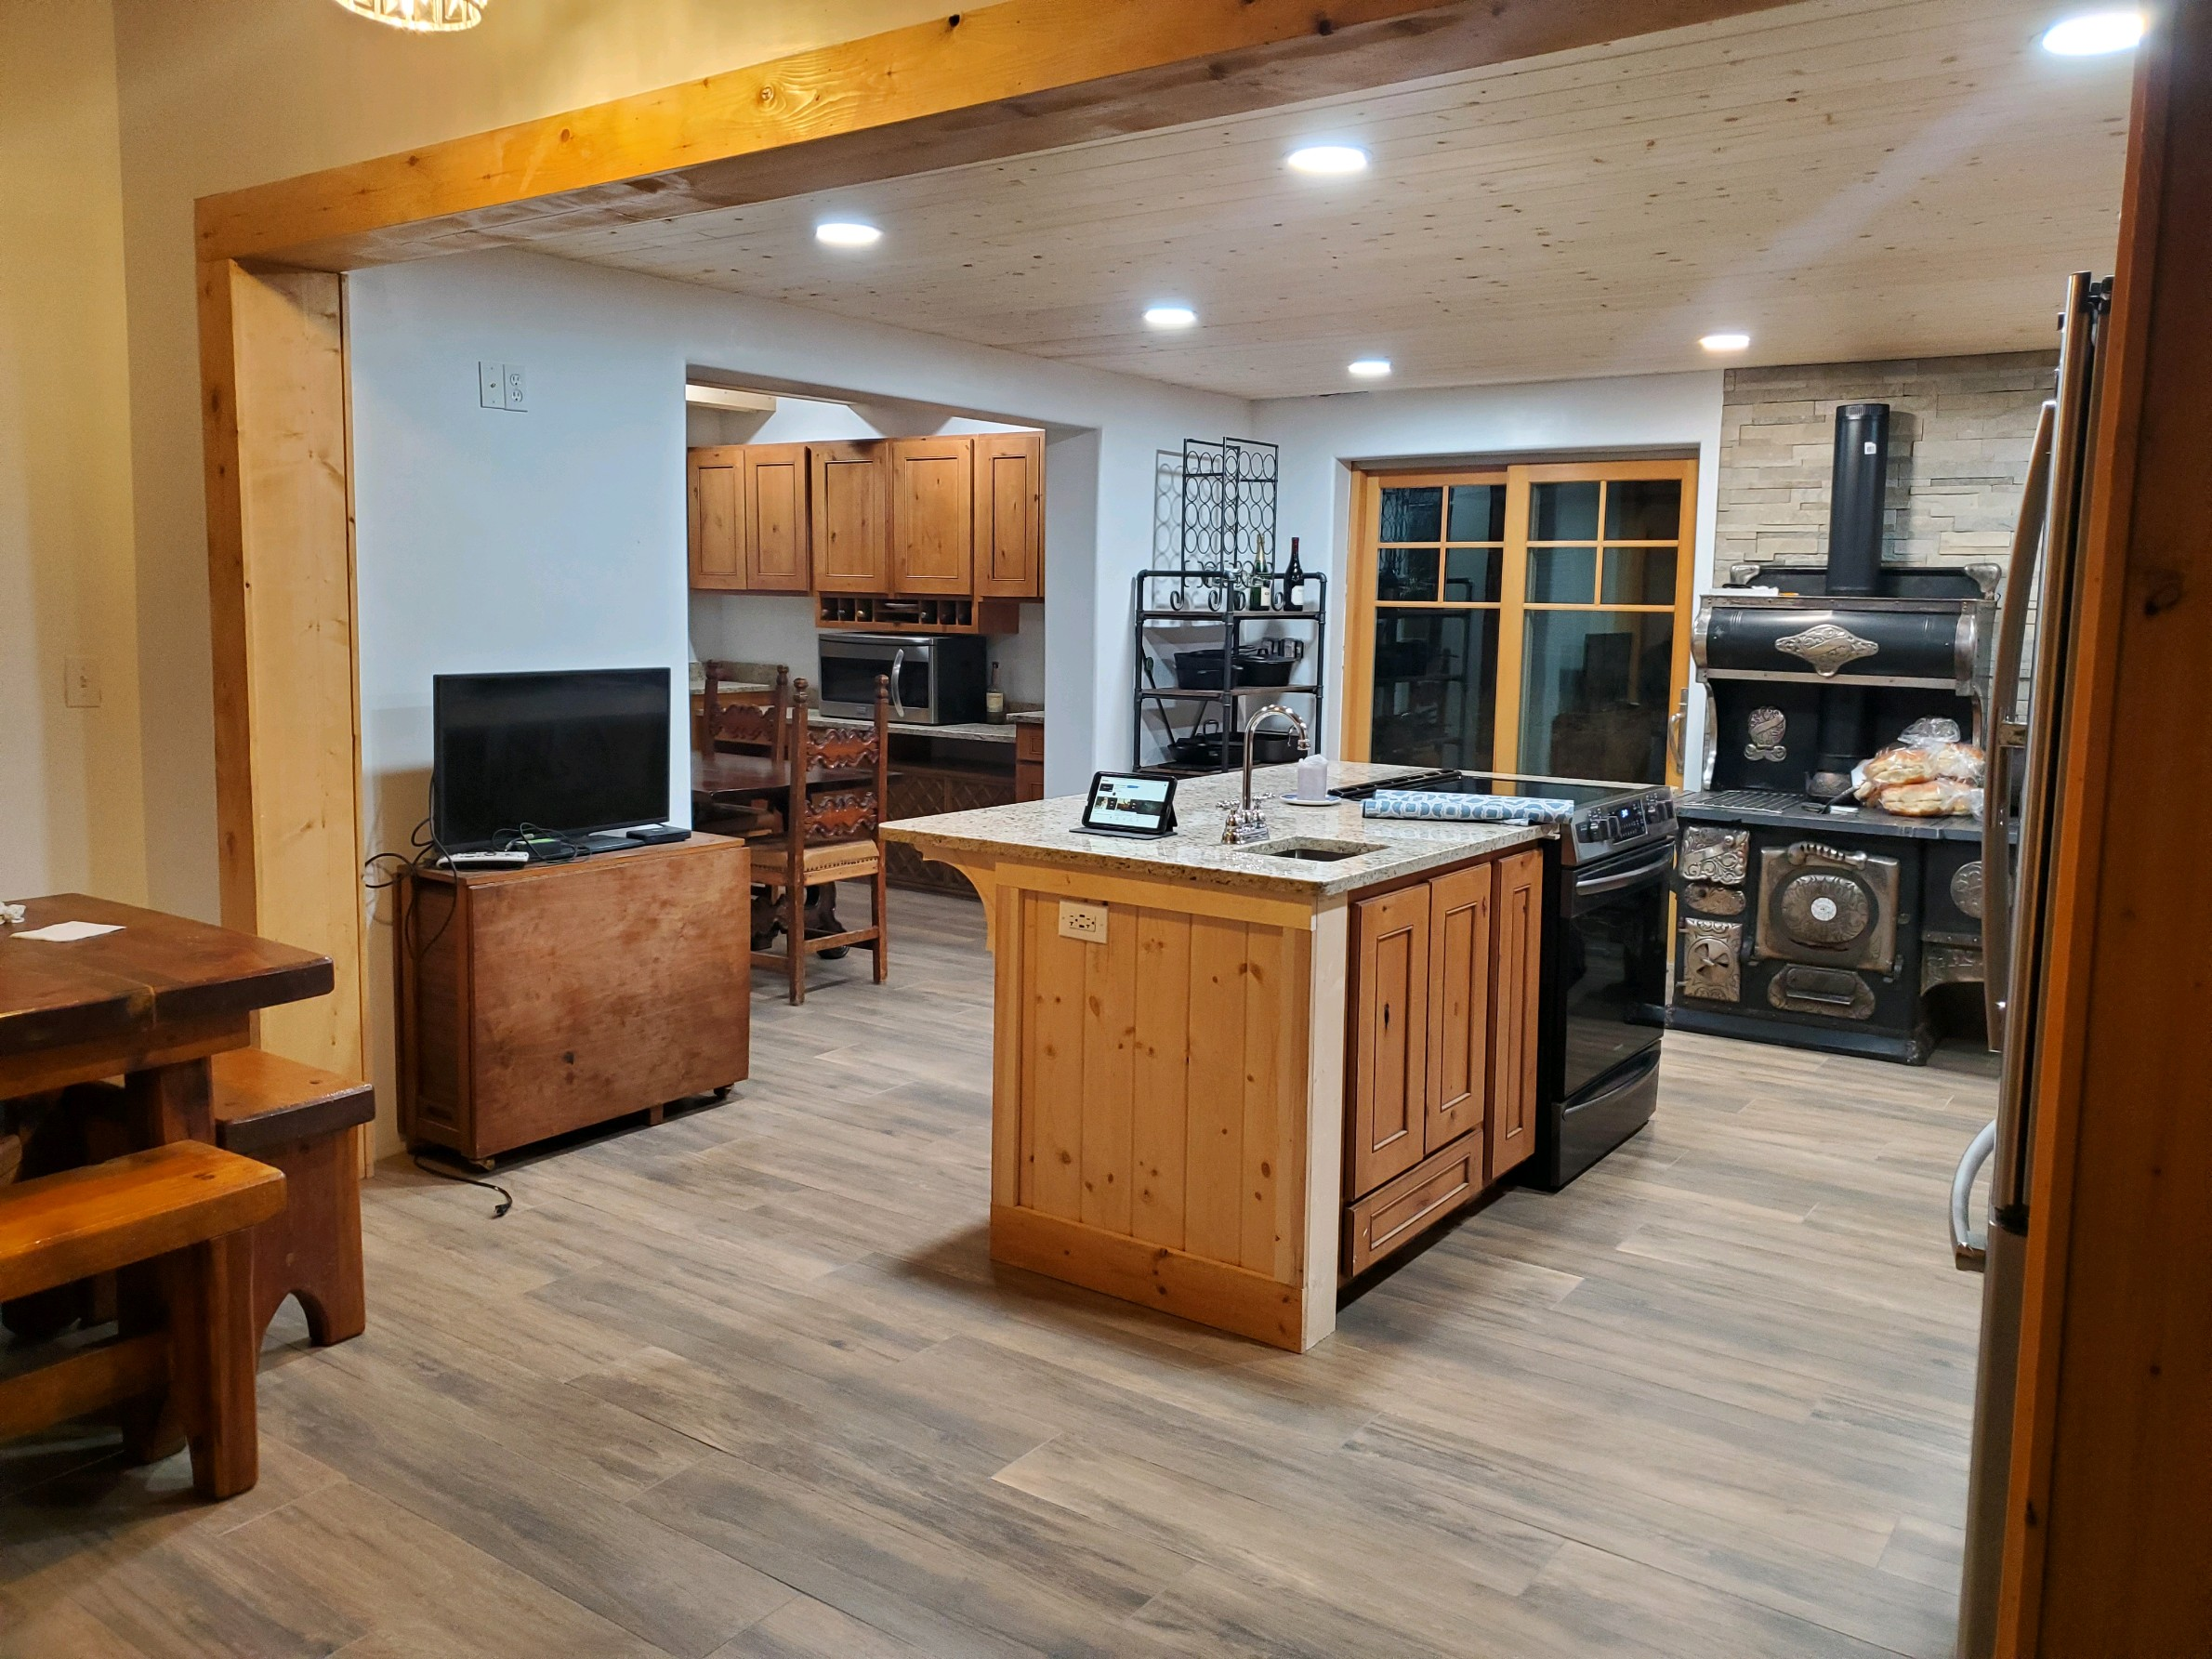 image showing flooring job in kitchen remodel